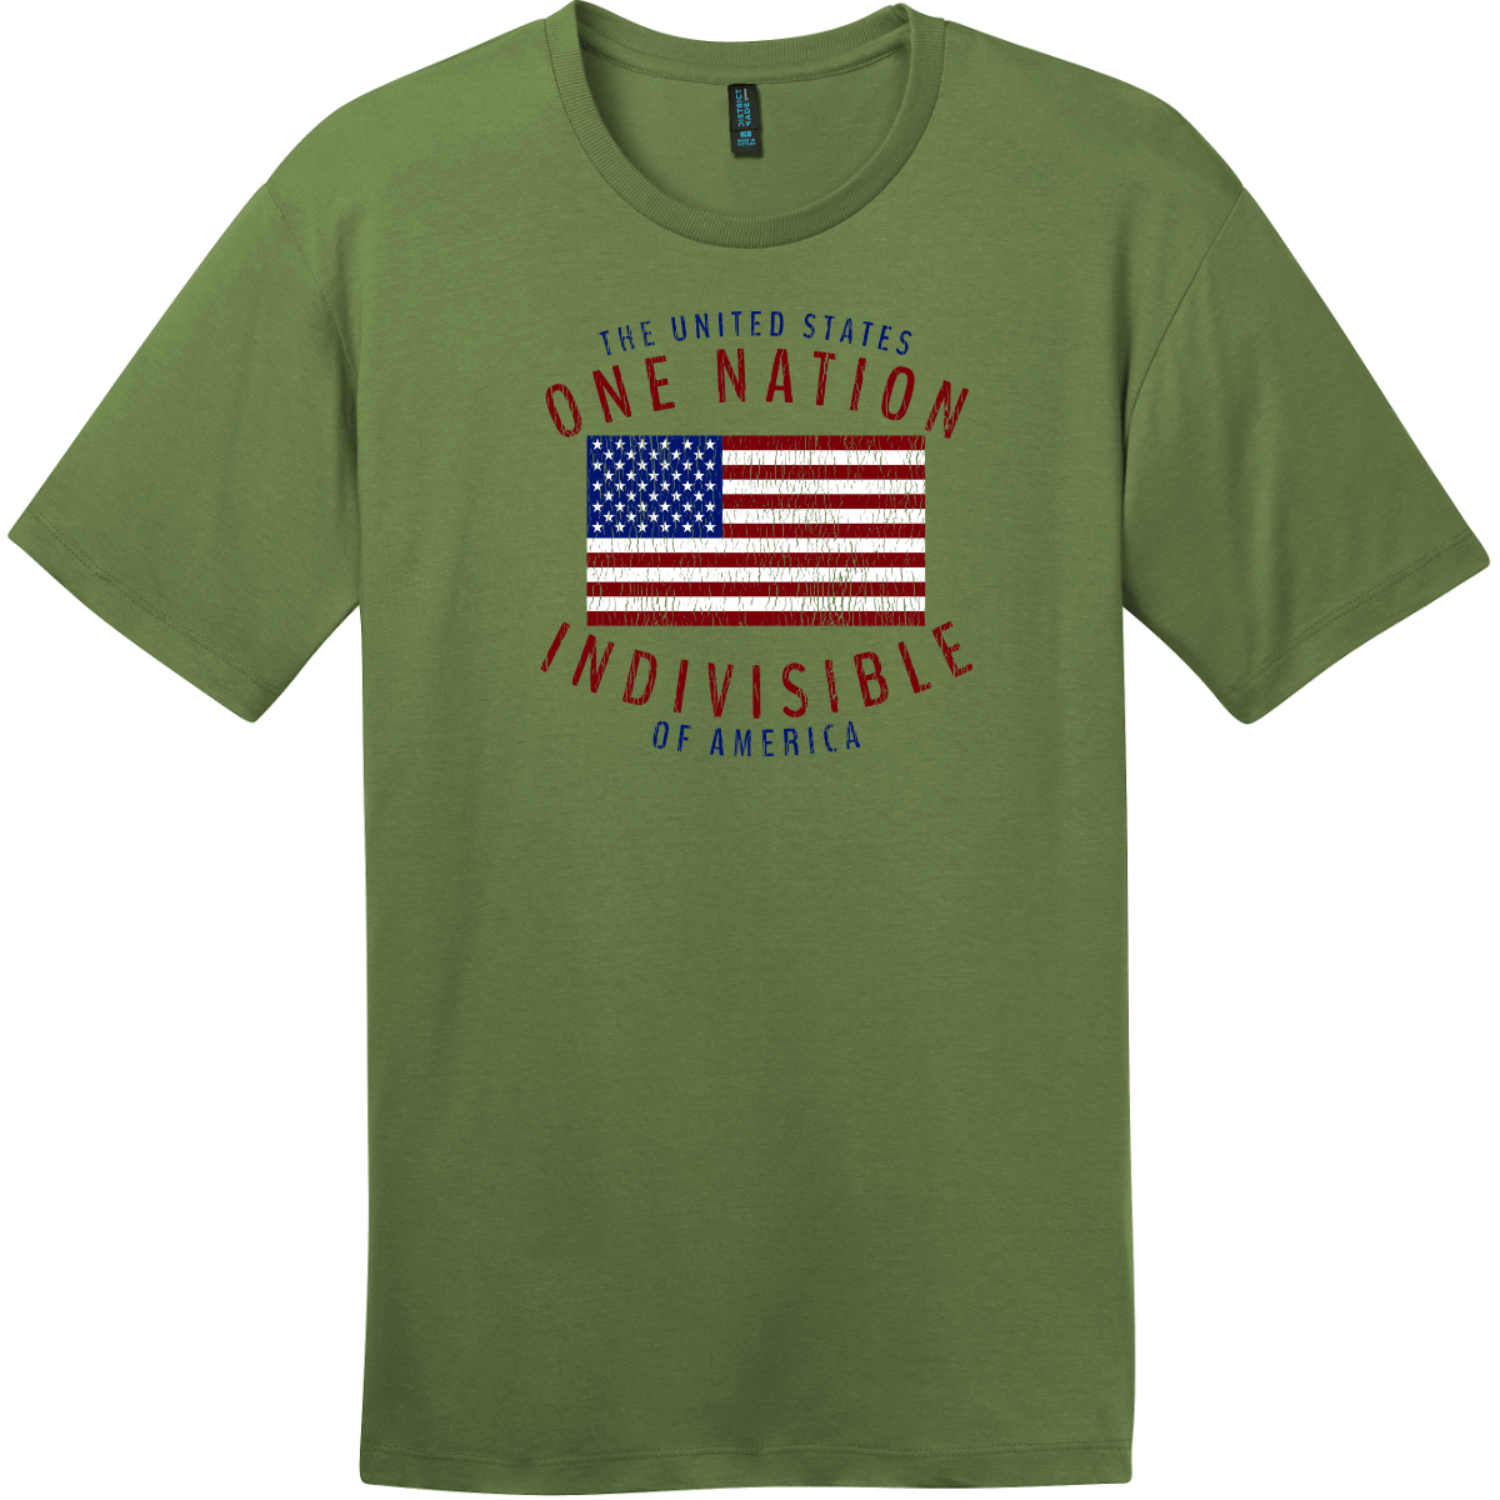 One Nation Indivisible American Flag T-Shirt Fresh Fatigue District Perfect Weight Tee DT104